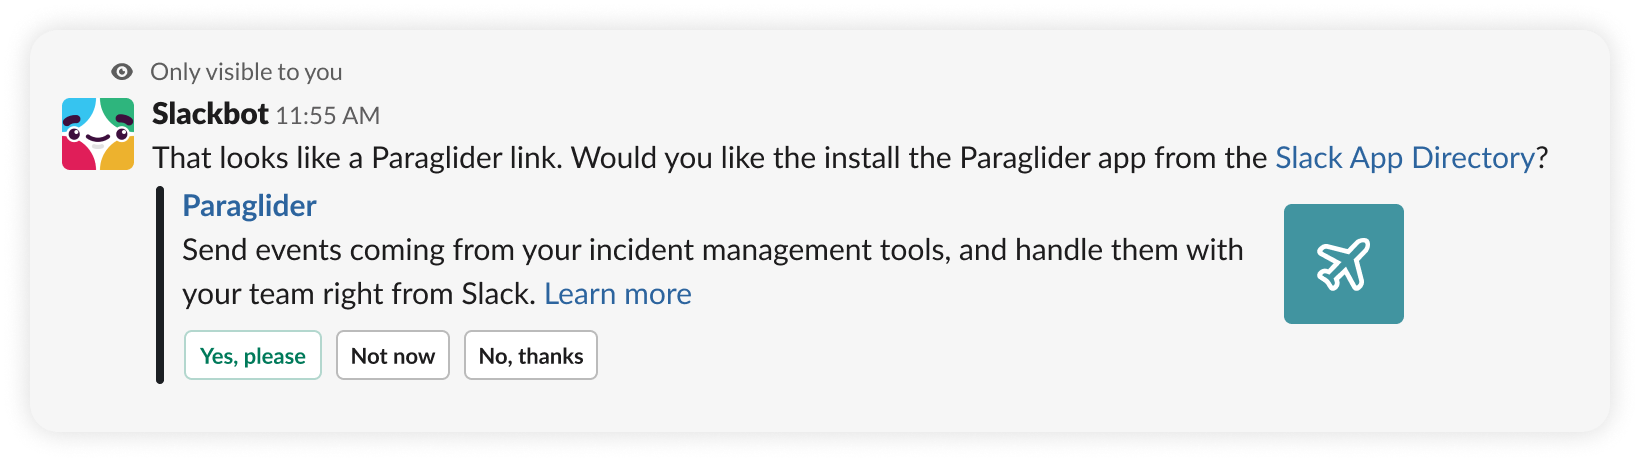 An example app suggestion for an app called Paraglider.